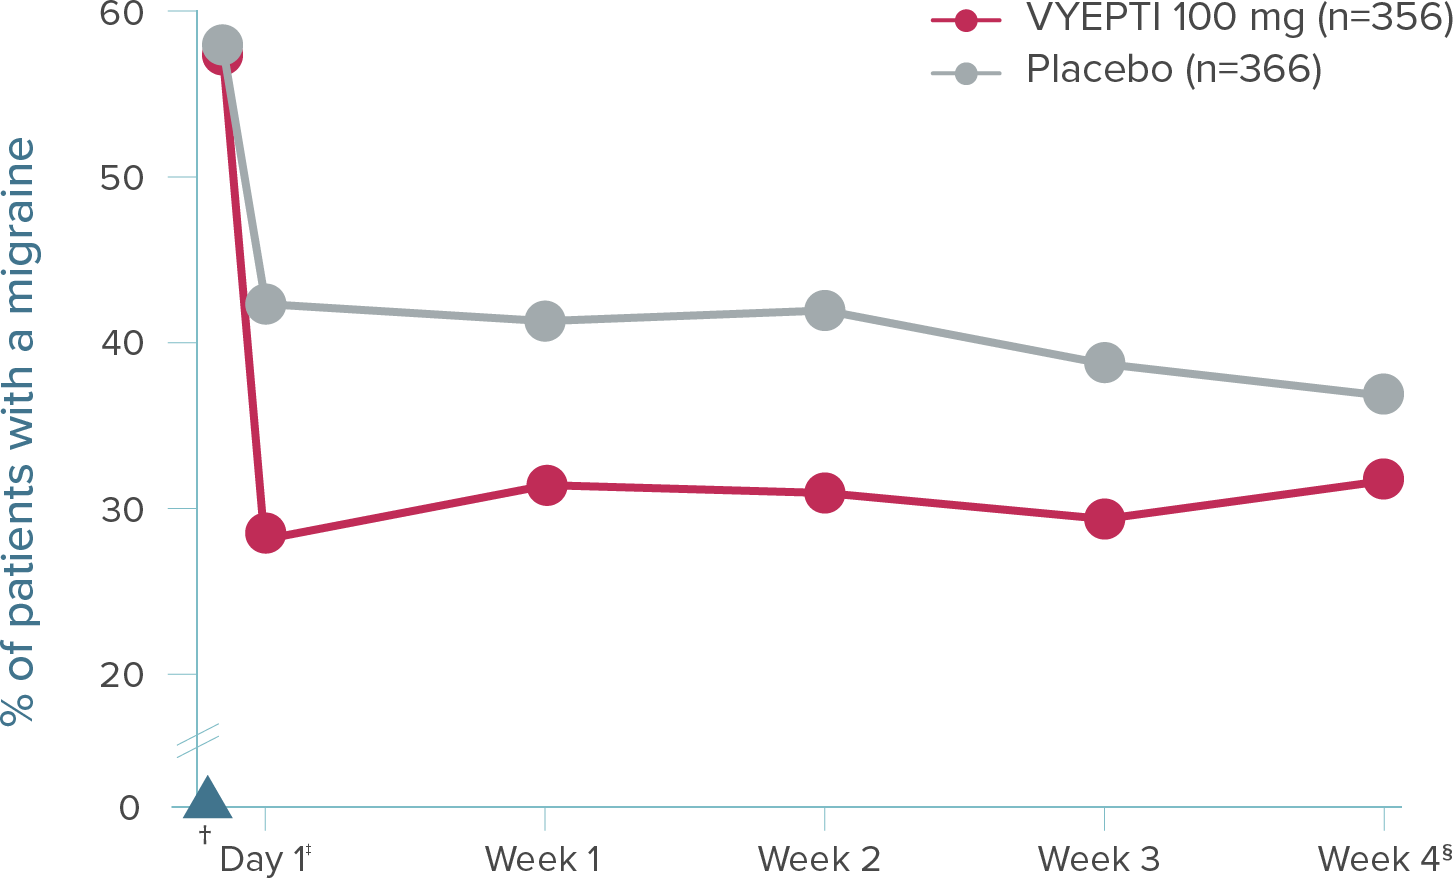 Graph showing that migraine incidence was reduced by 50.3% on Day 1 for patients treated with VYEPTI 100 mg vs 27.1% with placebo